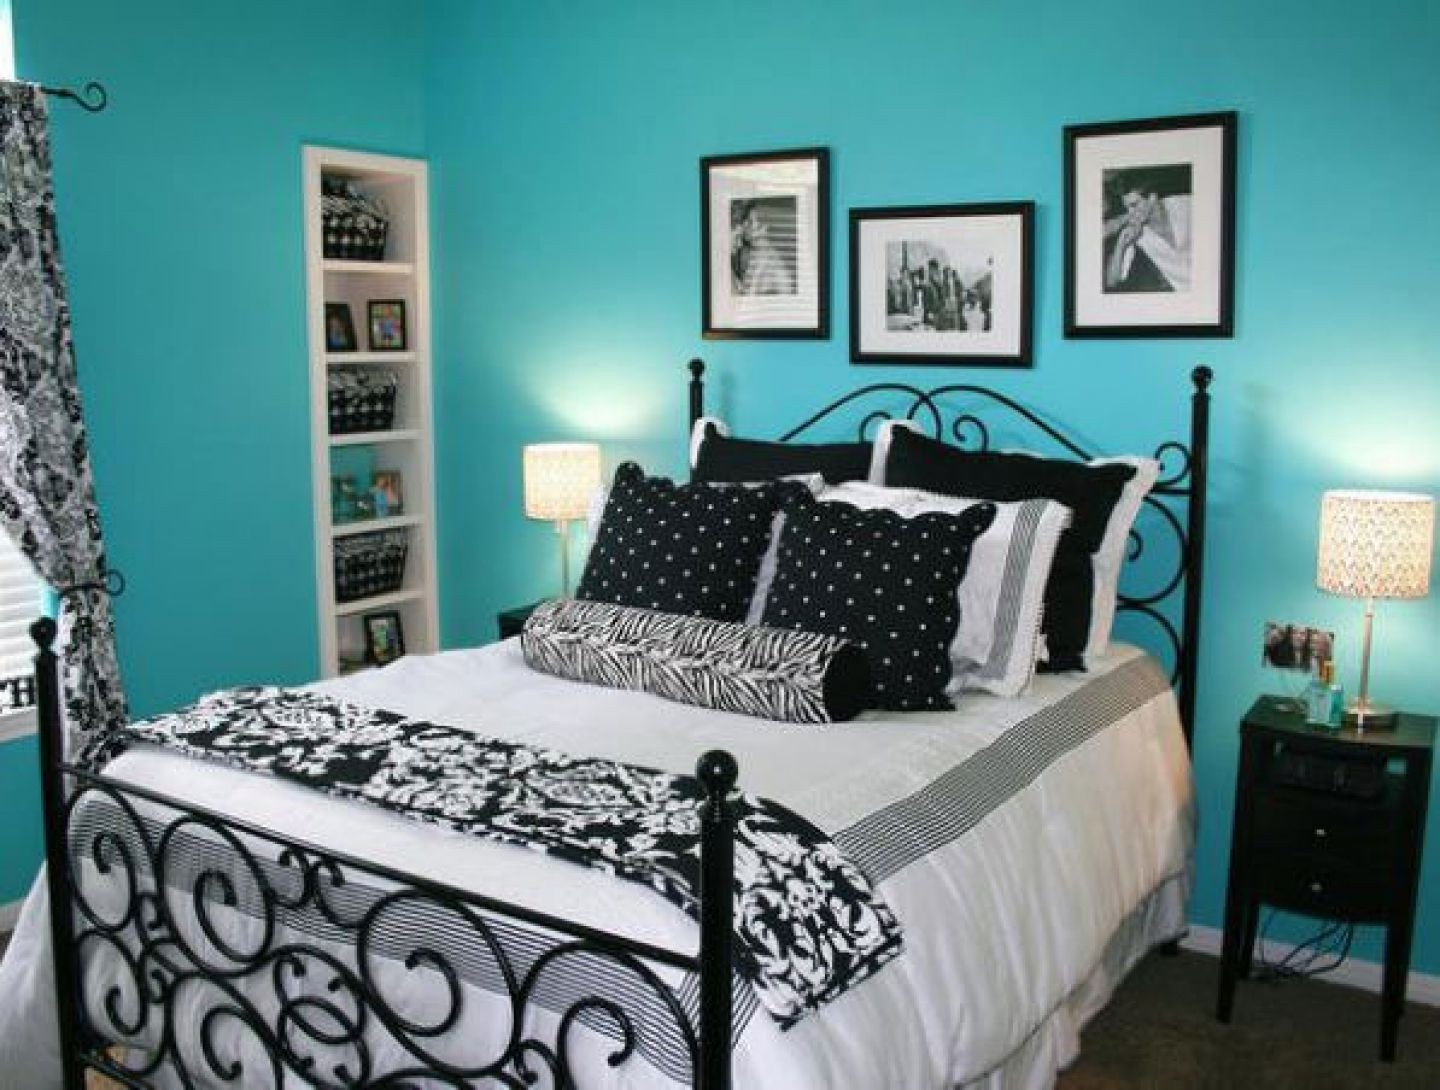 Grey and Turquoise Bedroom Ideas Inspirational Pin On Ideas I Like